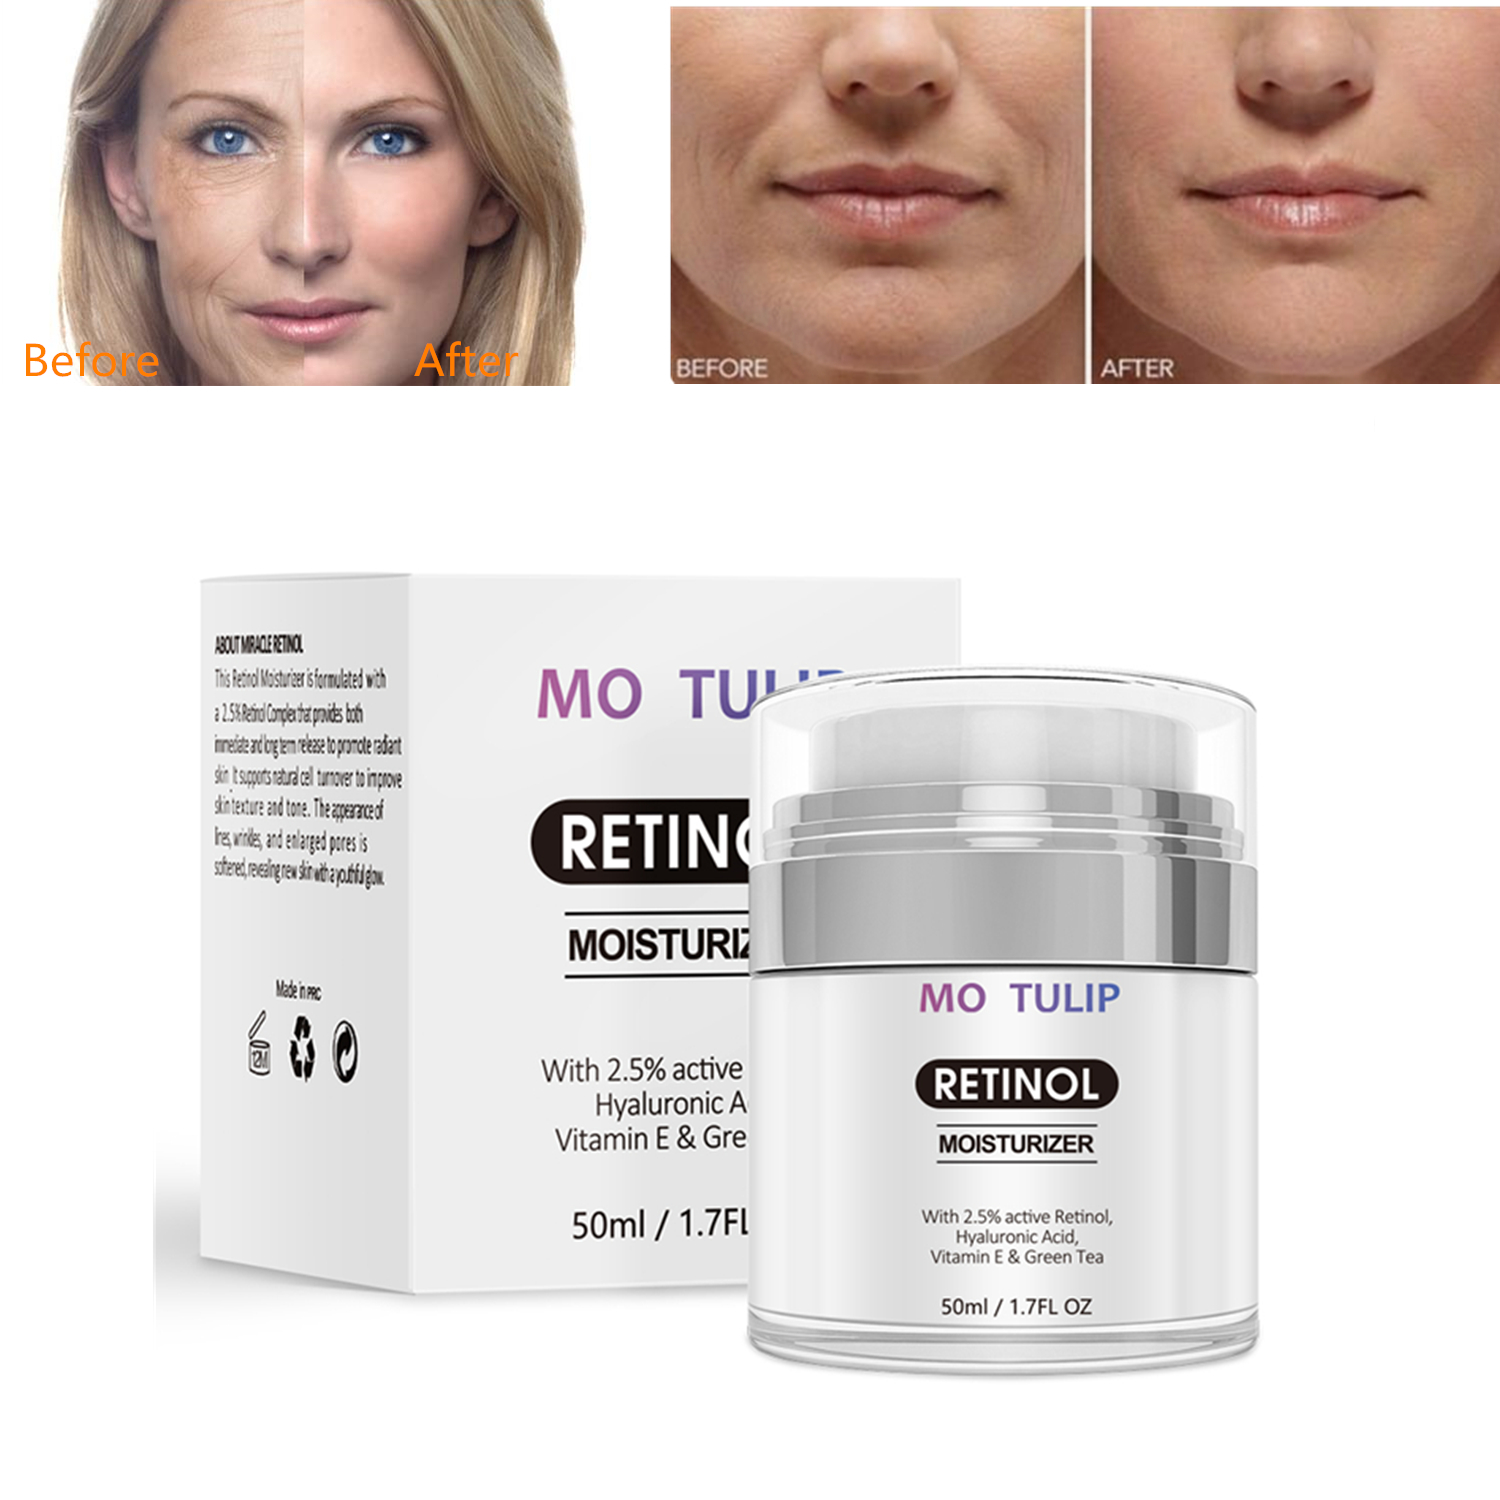 Retinol 2.5% Moisturizing Cream Anti Aging And Reduces Wrinkles And Fine Lines Day And Night Retinol Cream Drop Shipping